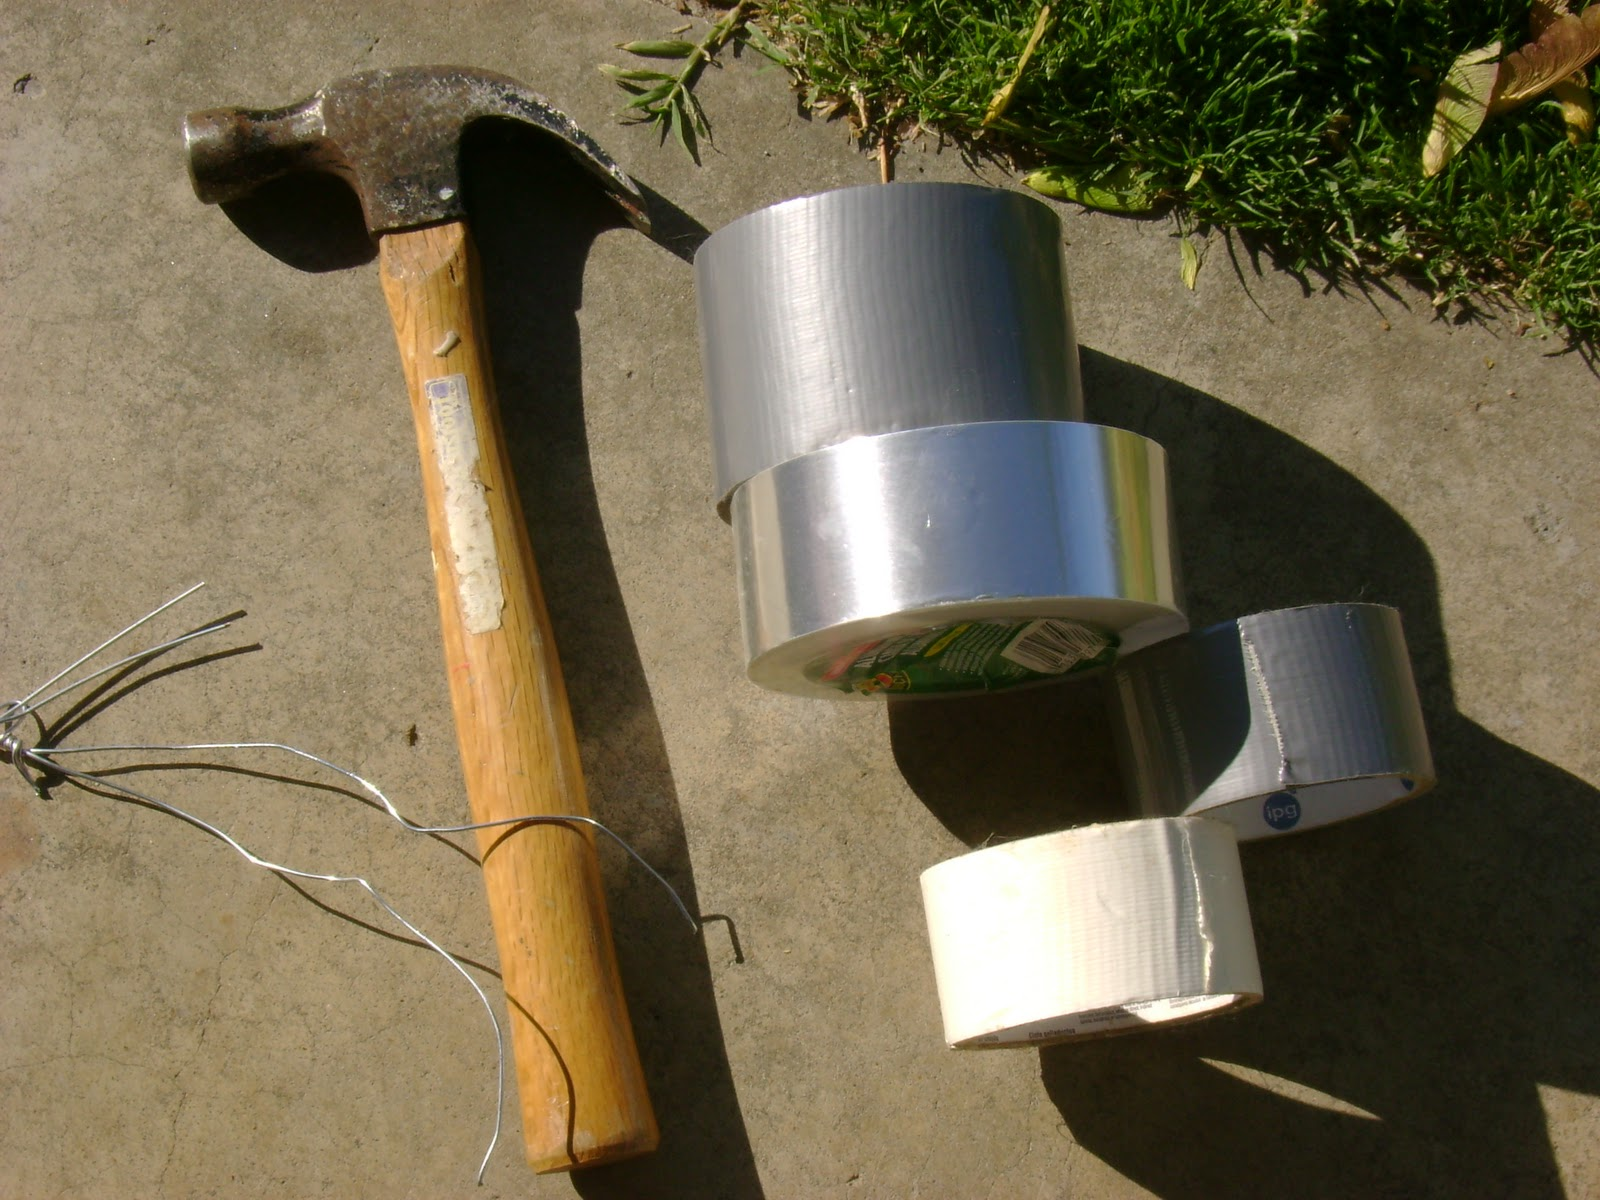 Baling Wire Tools : Secrets of simple living duct tape baling wire repairs